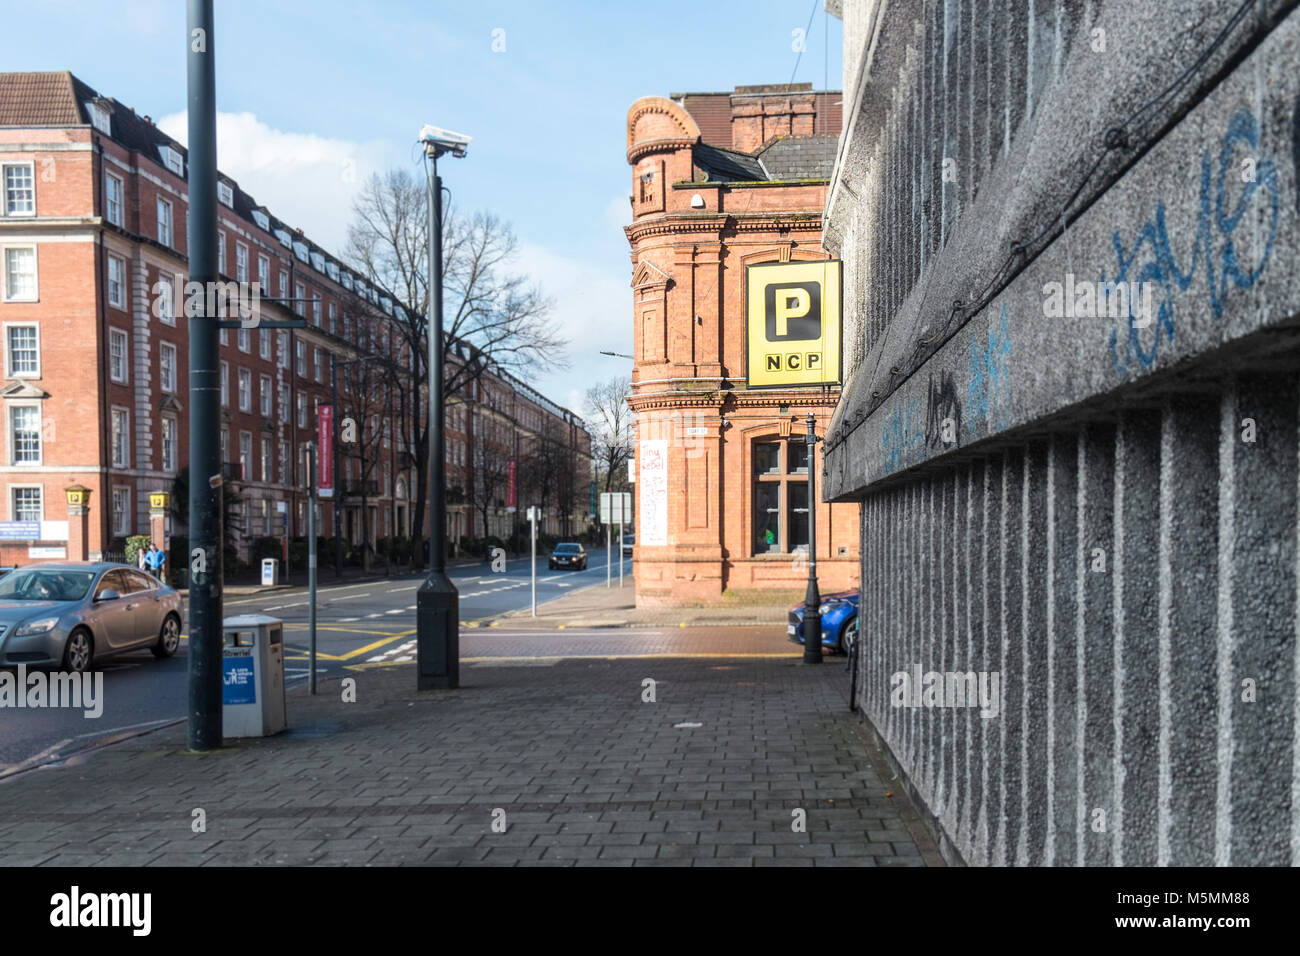 ncp car park stock photos ncp car park stock images alamy. Black Bedroom Furniture Sets. Home Design Ideas